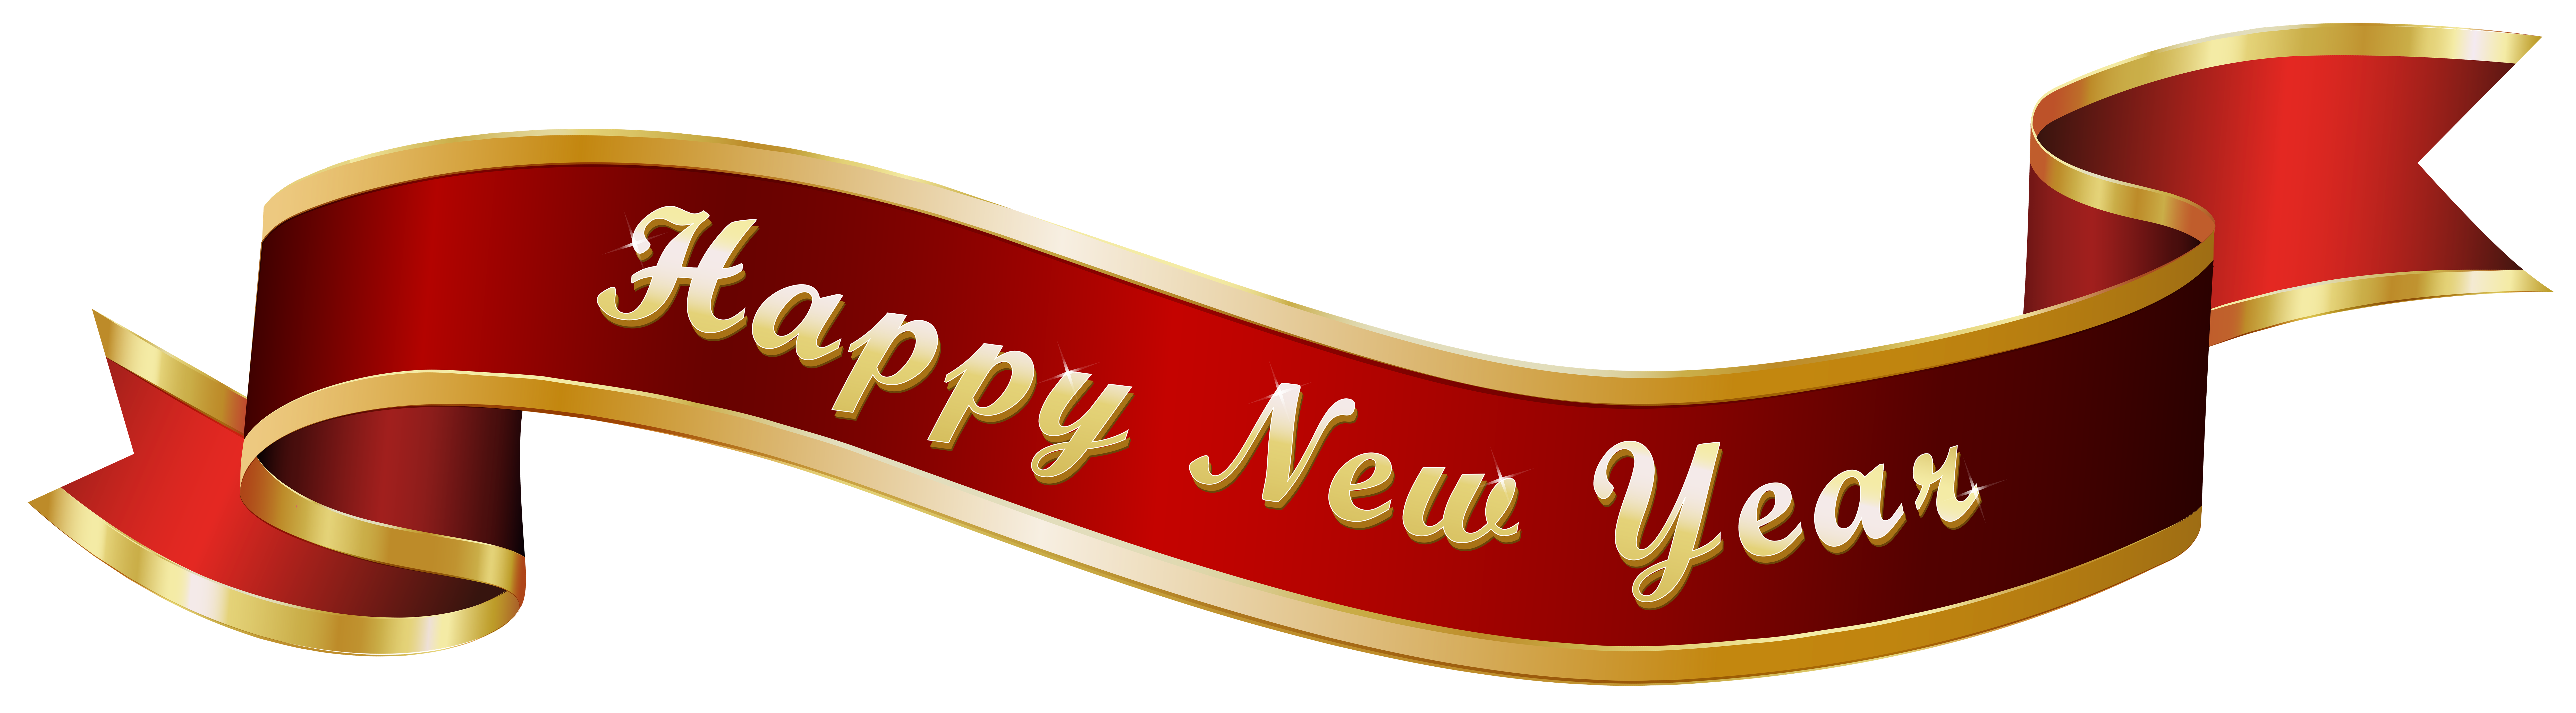 Happy new year text clipart graphic free download Pin by Chyi Jen on Templates free | Happy new year, Happy new year ... graphic free download